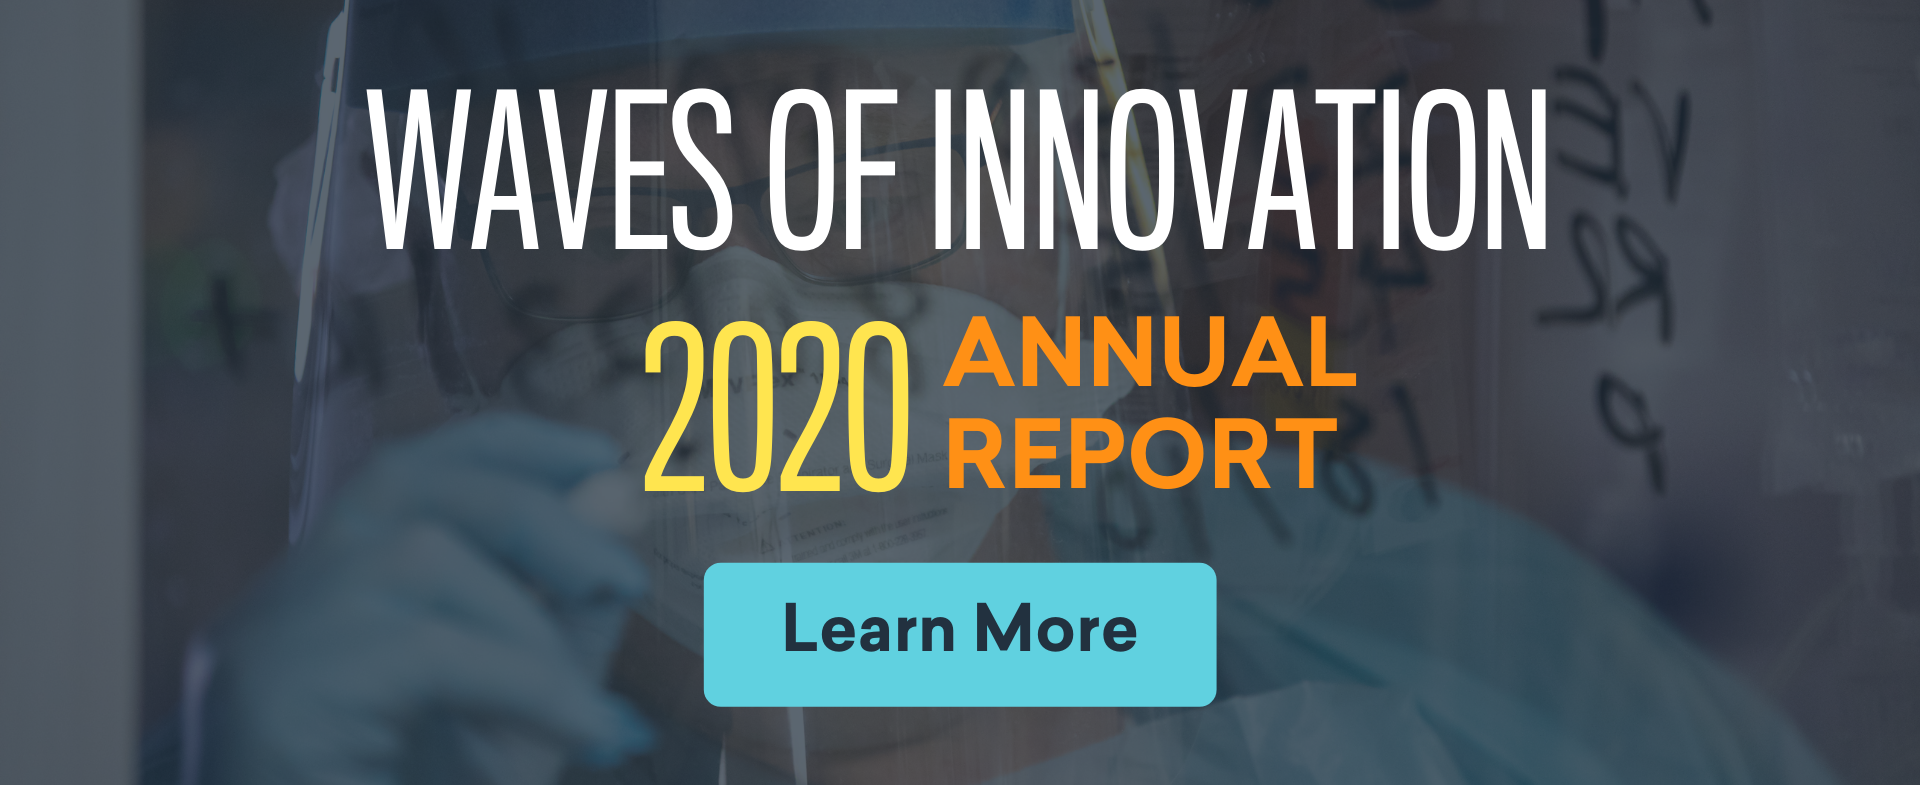 Waves of Innovation 2020 Annual Report